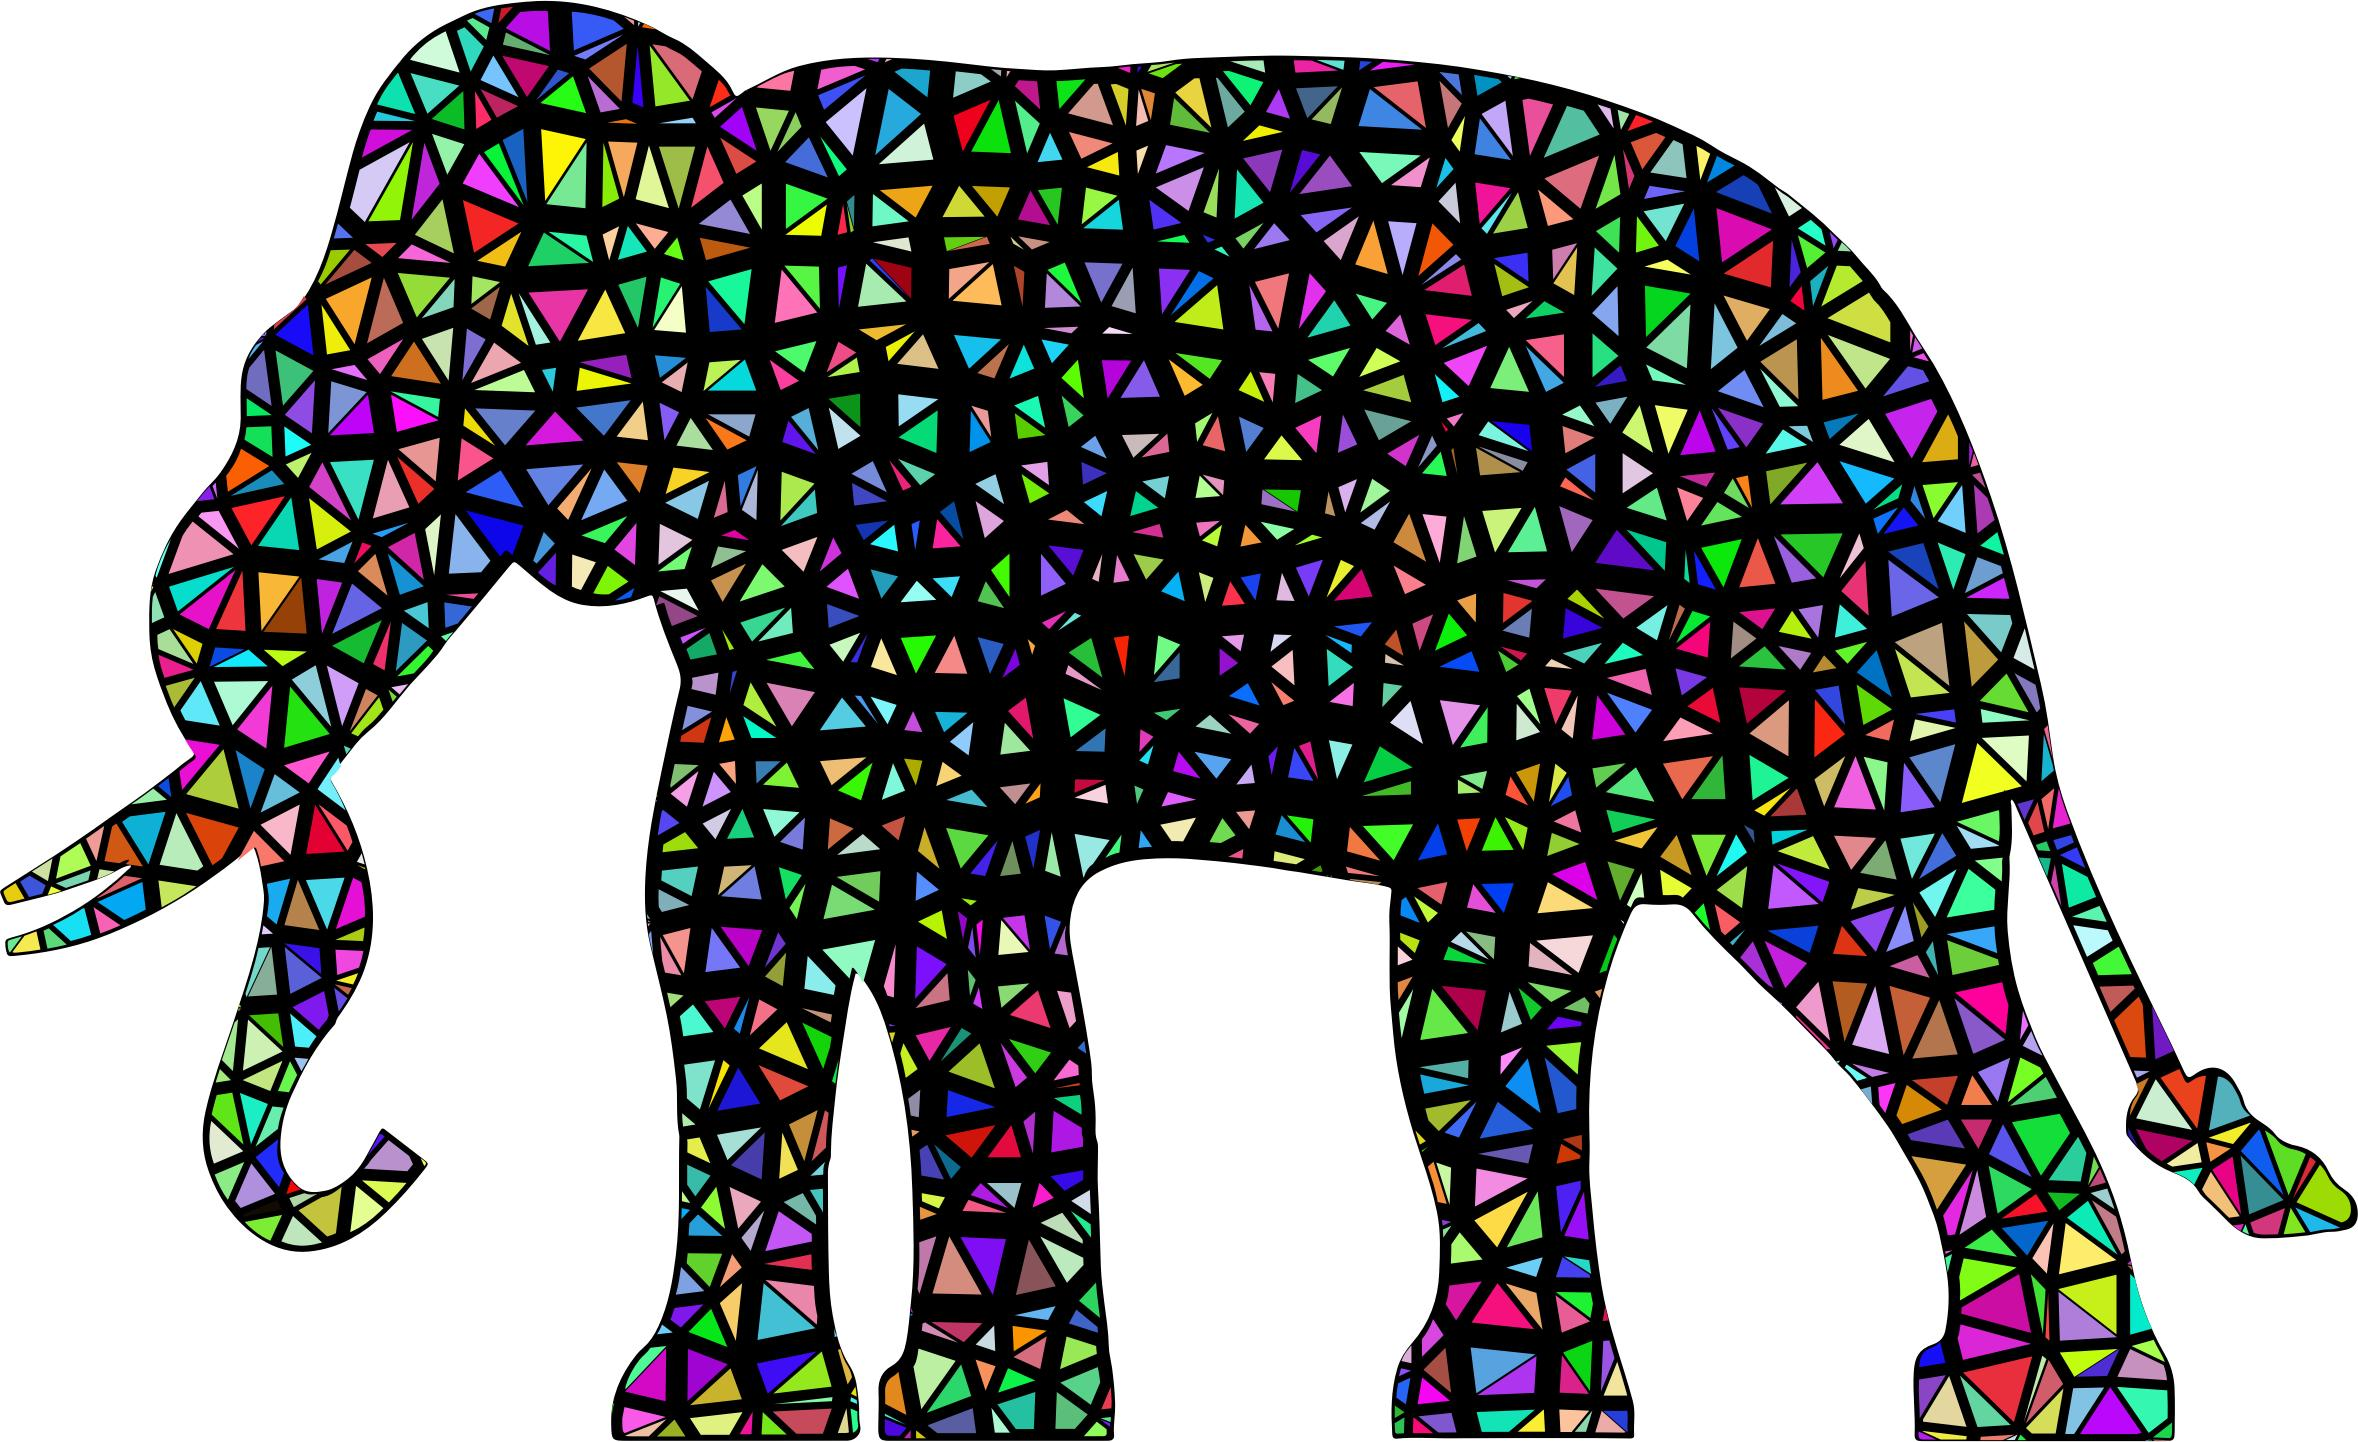 2358x1442 Elephant Silhouette Flying Apart 2 With Background Icons Png